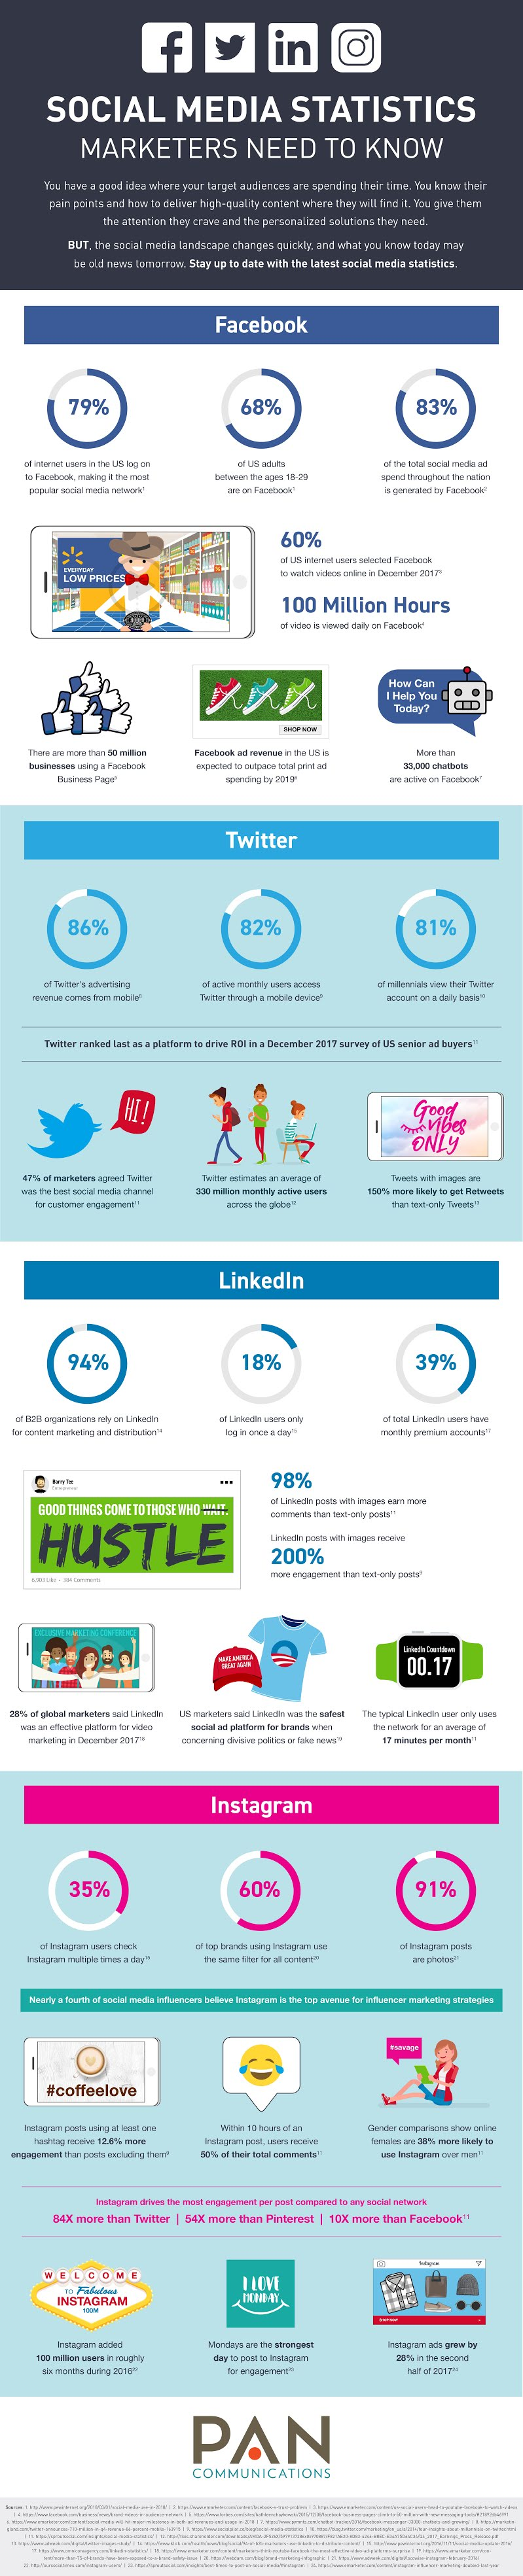 30+ Social Media Statistics Marketers Need to Know